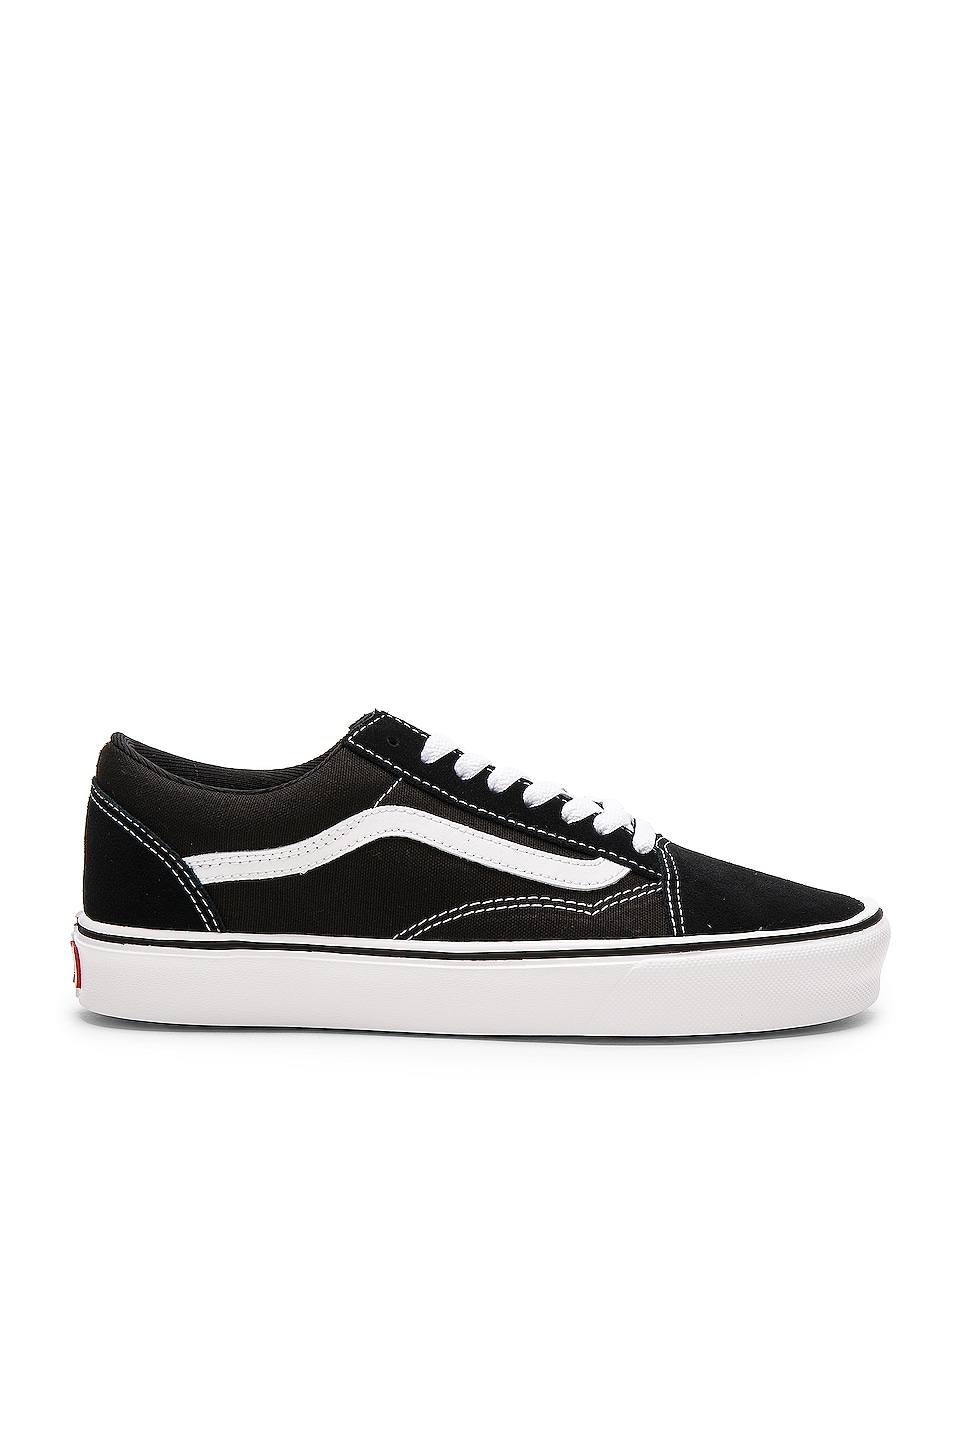 Vans + Old Skool Lite in Black & White